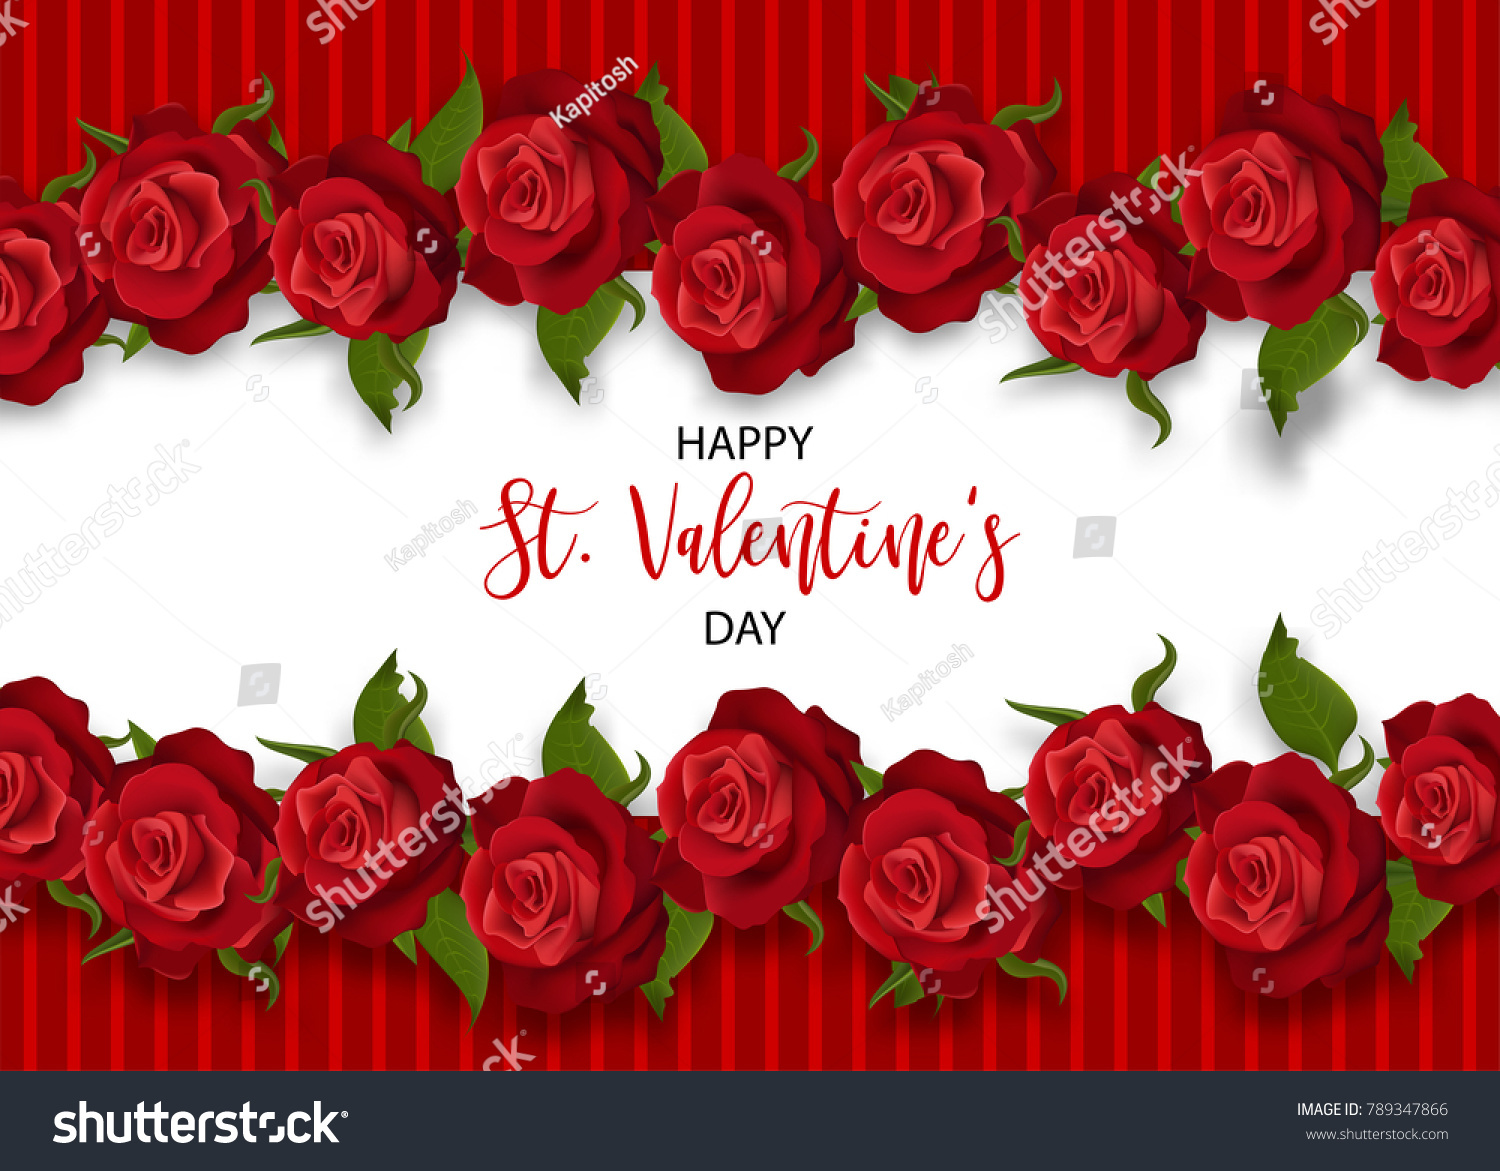 Realistic red rose st valentines day stock vector royalty free realistic red rose st valentines day card love roses flower bouquet valentines banner frame izmirmasajfo